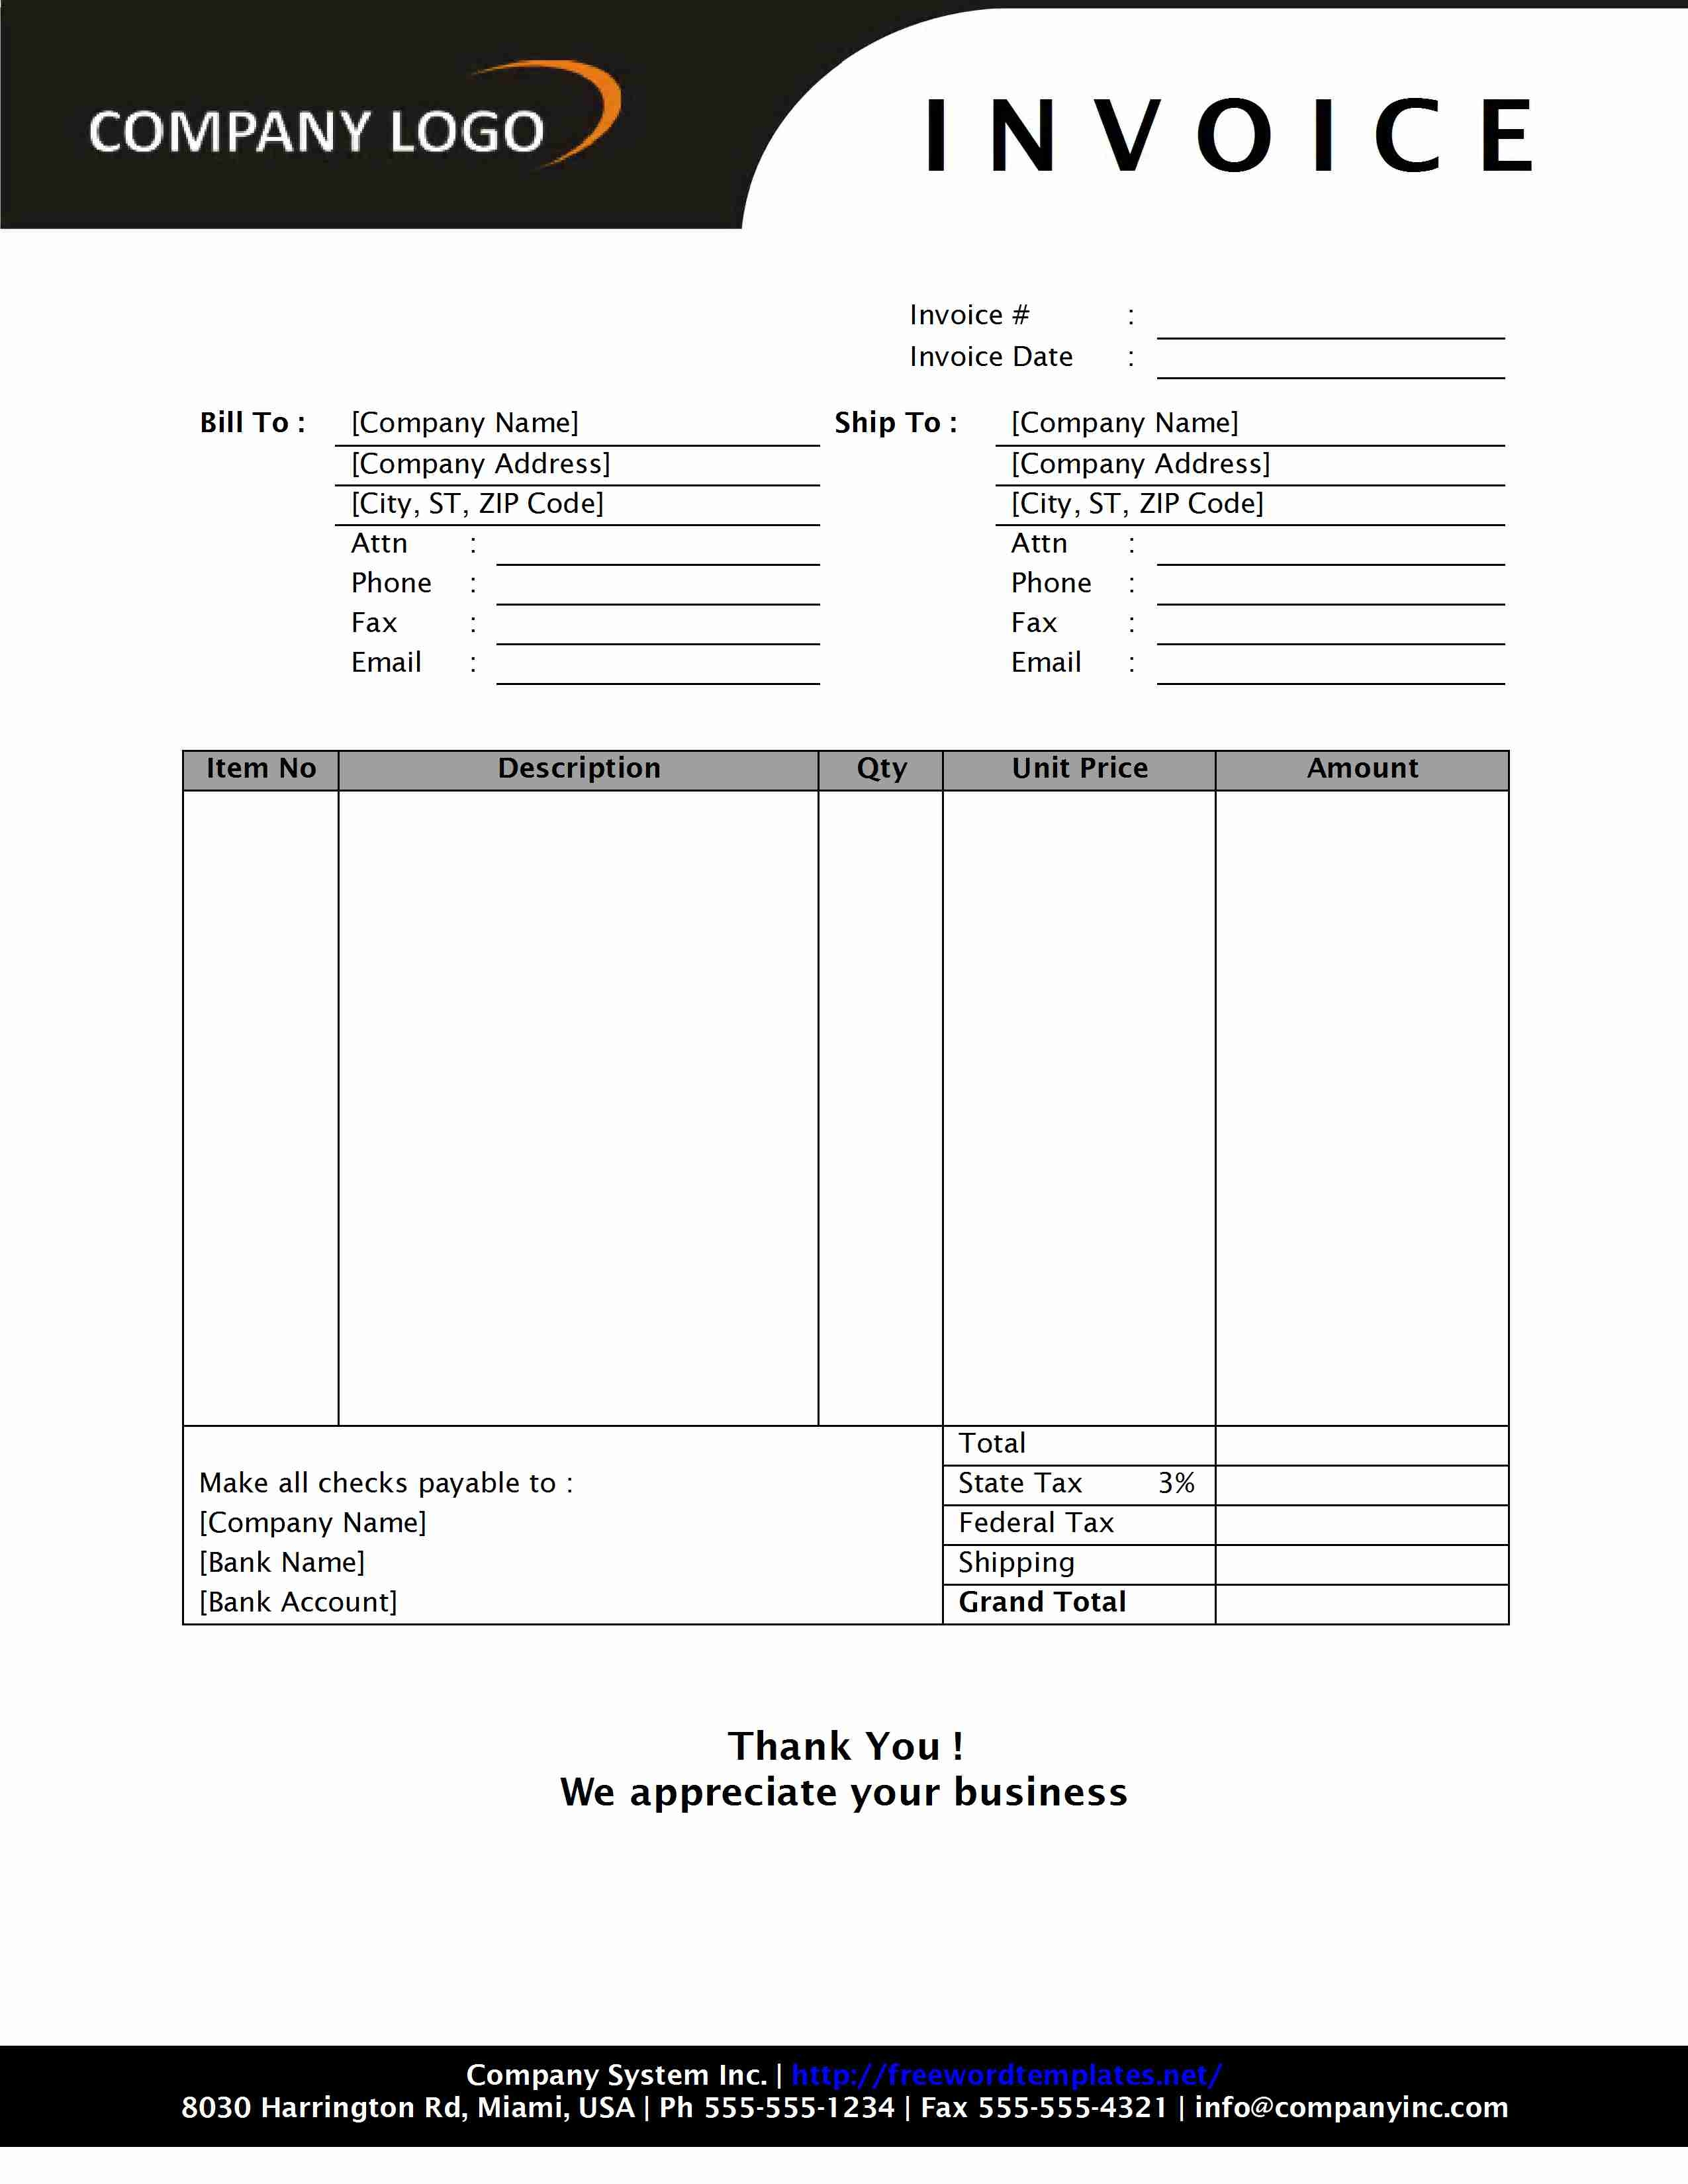 simple invoice word * invoice template ideas, Invoice templates